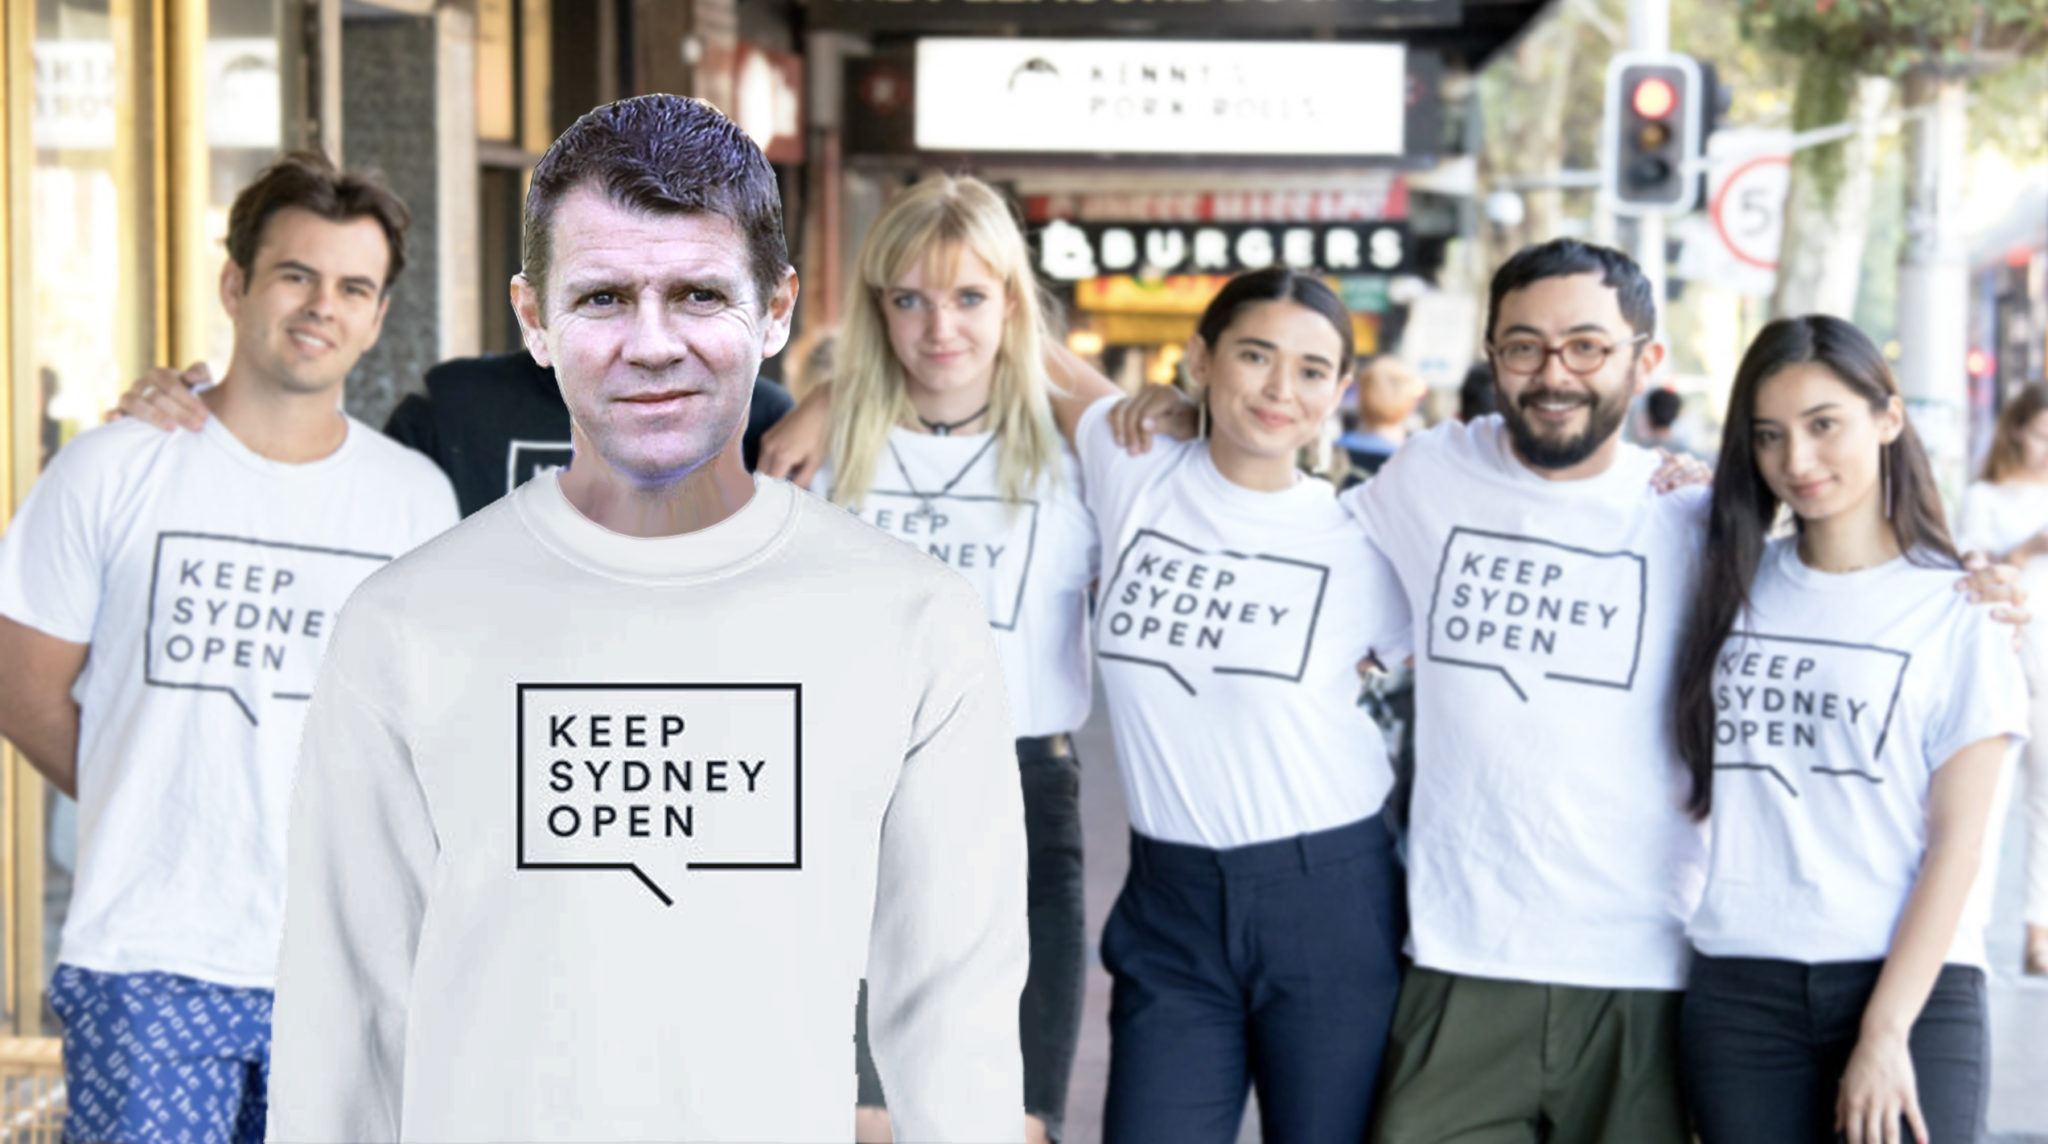 Mike Baird To Re-Enter Politics As Candidate For Keep Sydney